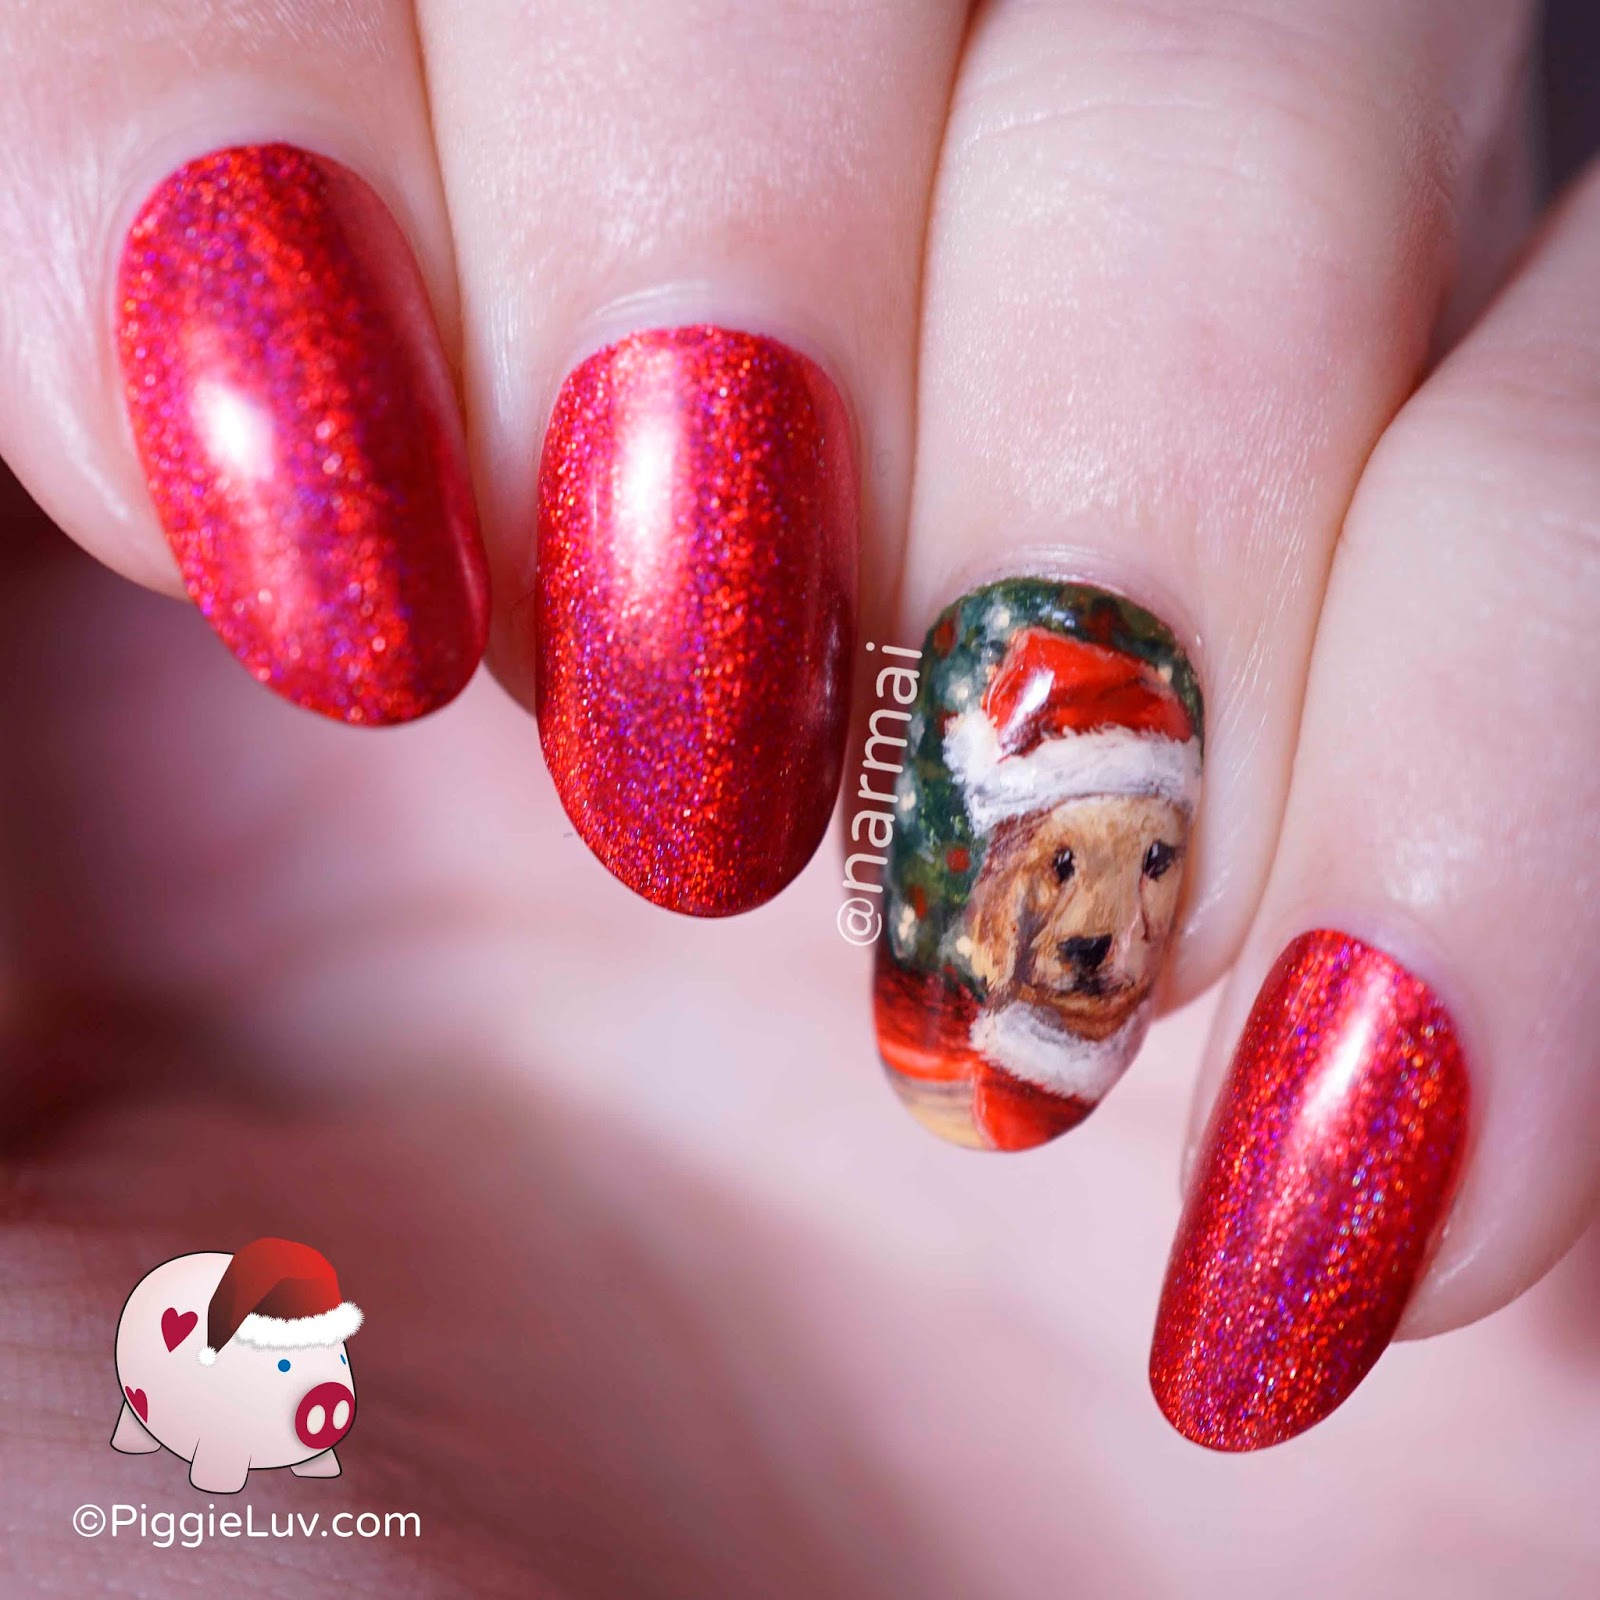 Piggieluv santa dog nail art for christmas so heres the thing santa is actually a dog yes he is he asked me to tell you so everyone would know not to set out chocolate cookies for him anymore p prinsesfo Gallery